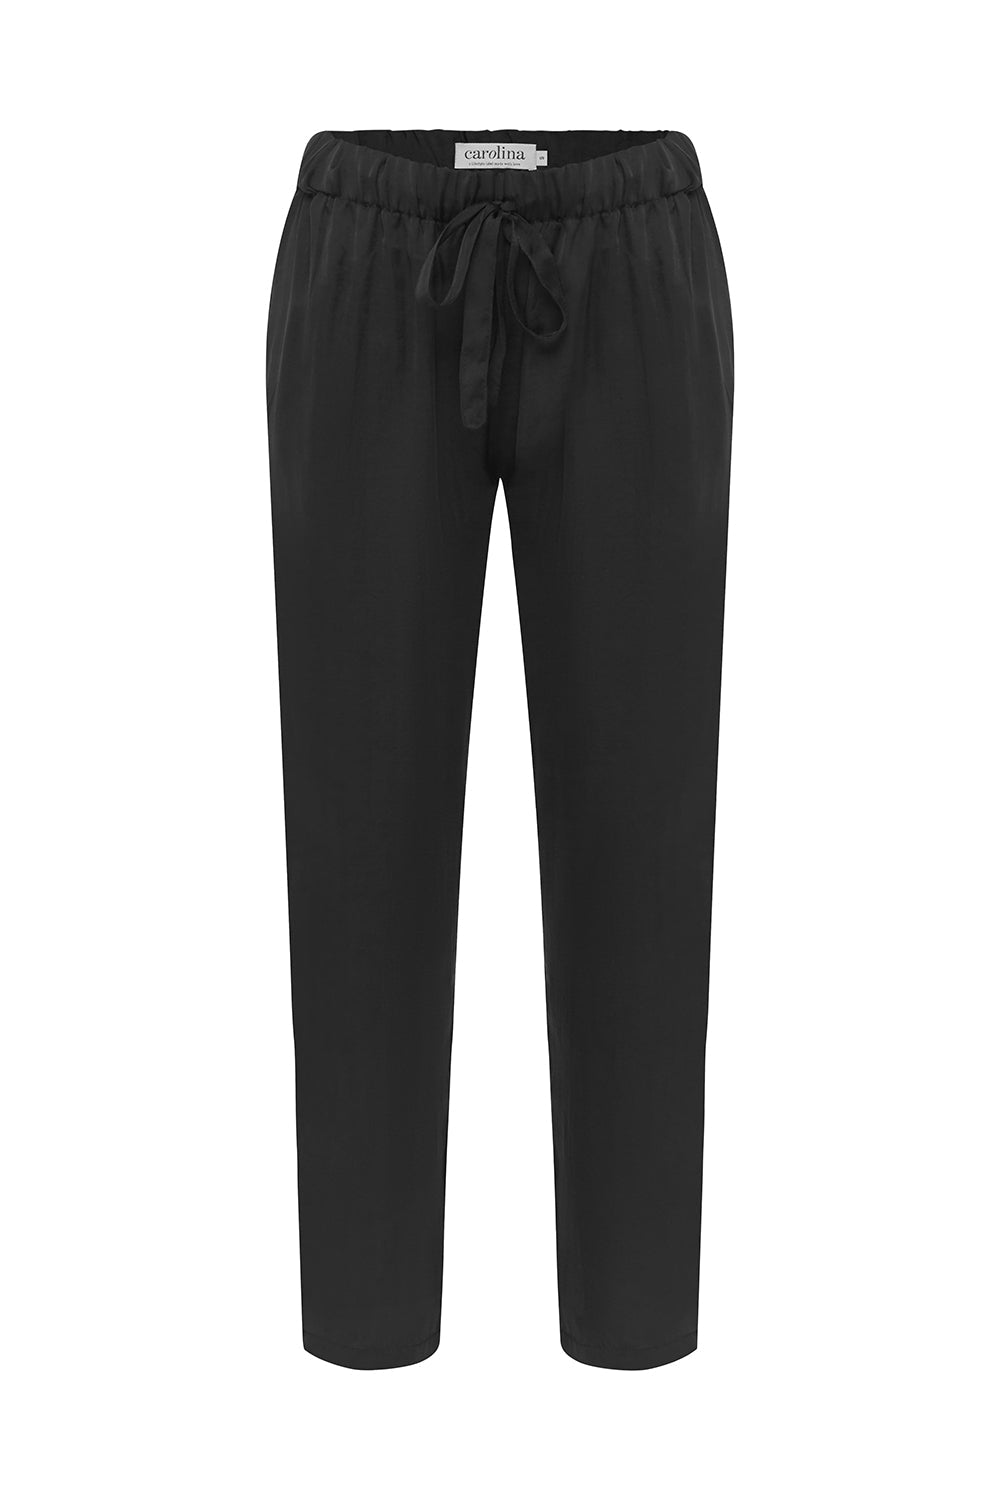 Camilla Pants Black